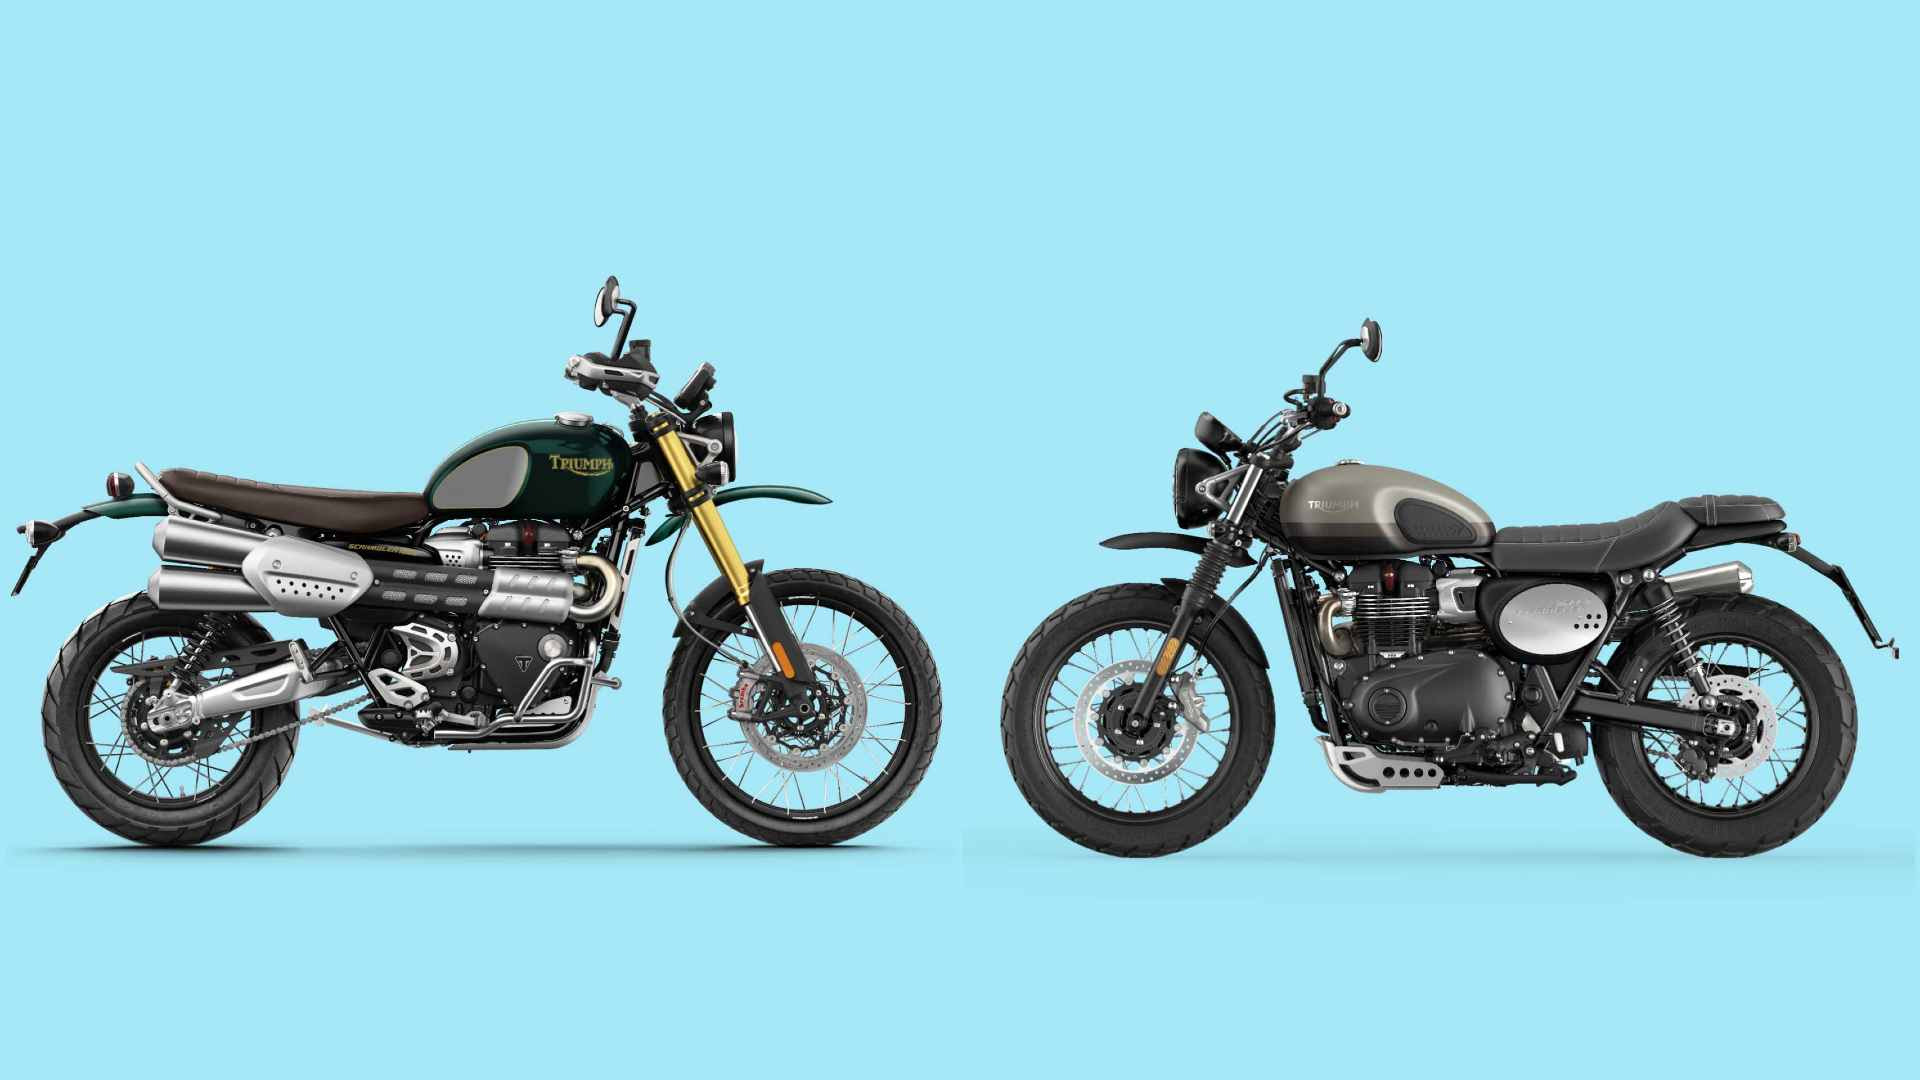 Just 1,000 examples of the Triumph Scrambler 1200 Steve McQueen edition (left) will be produced, and just 775 examples of the Street Scrambler Sandstorm will be built. Image: Triumph Motorcycles/Tech2